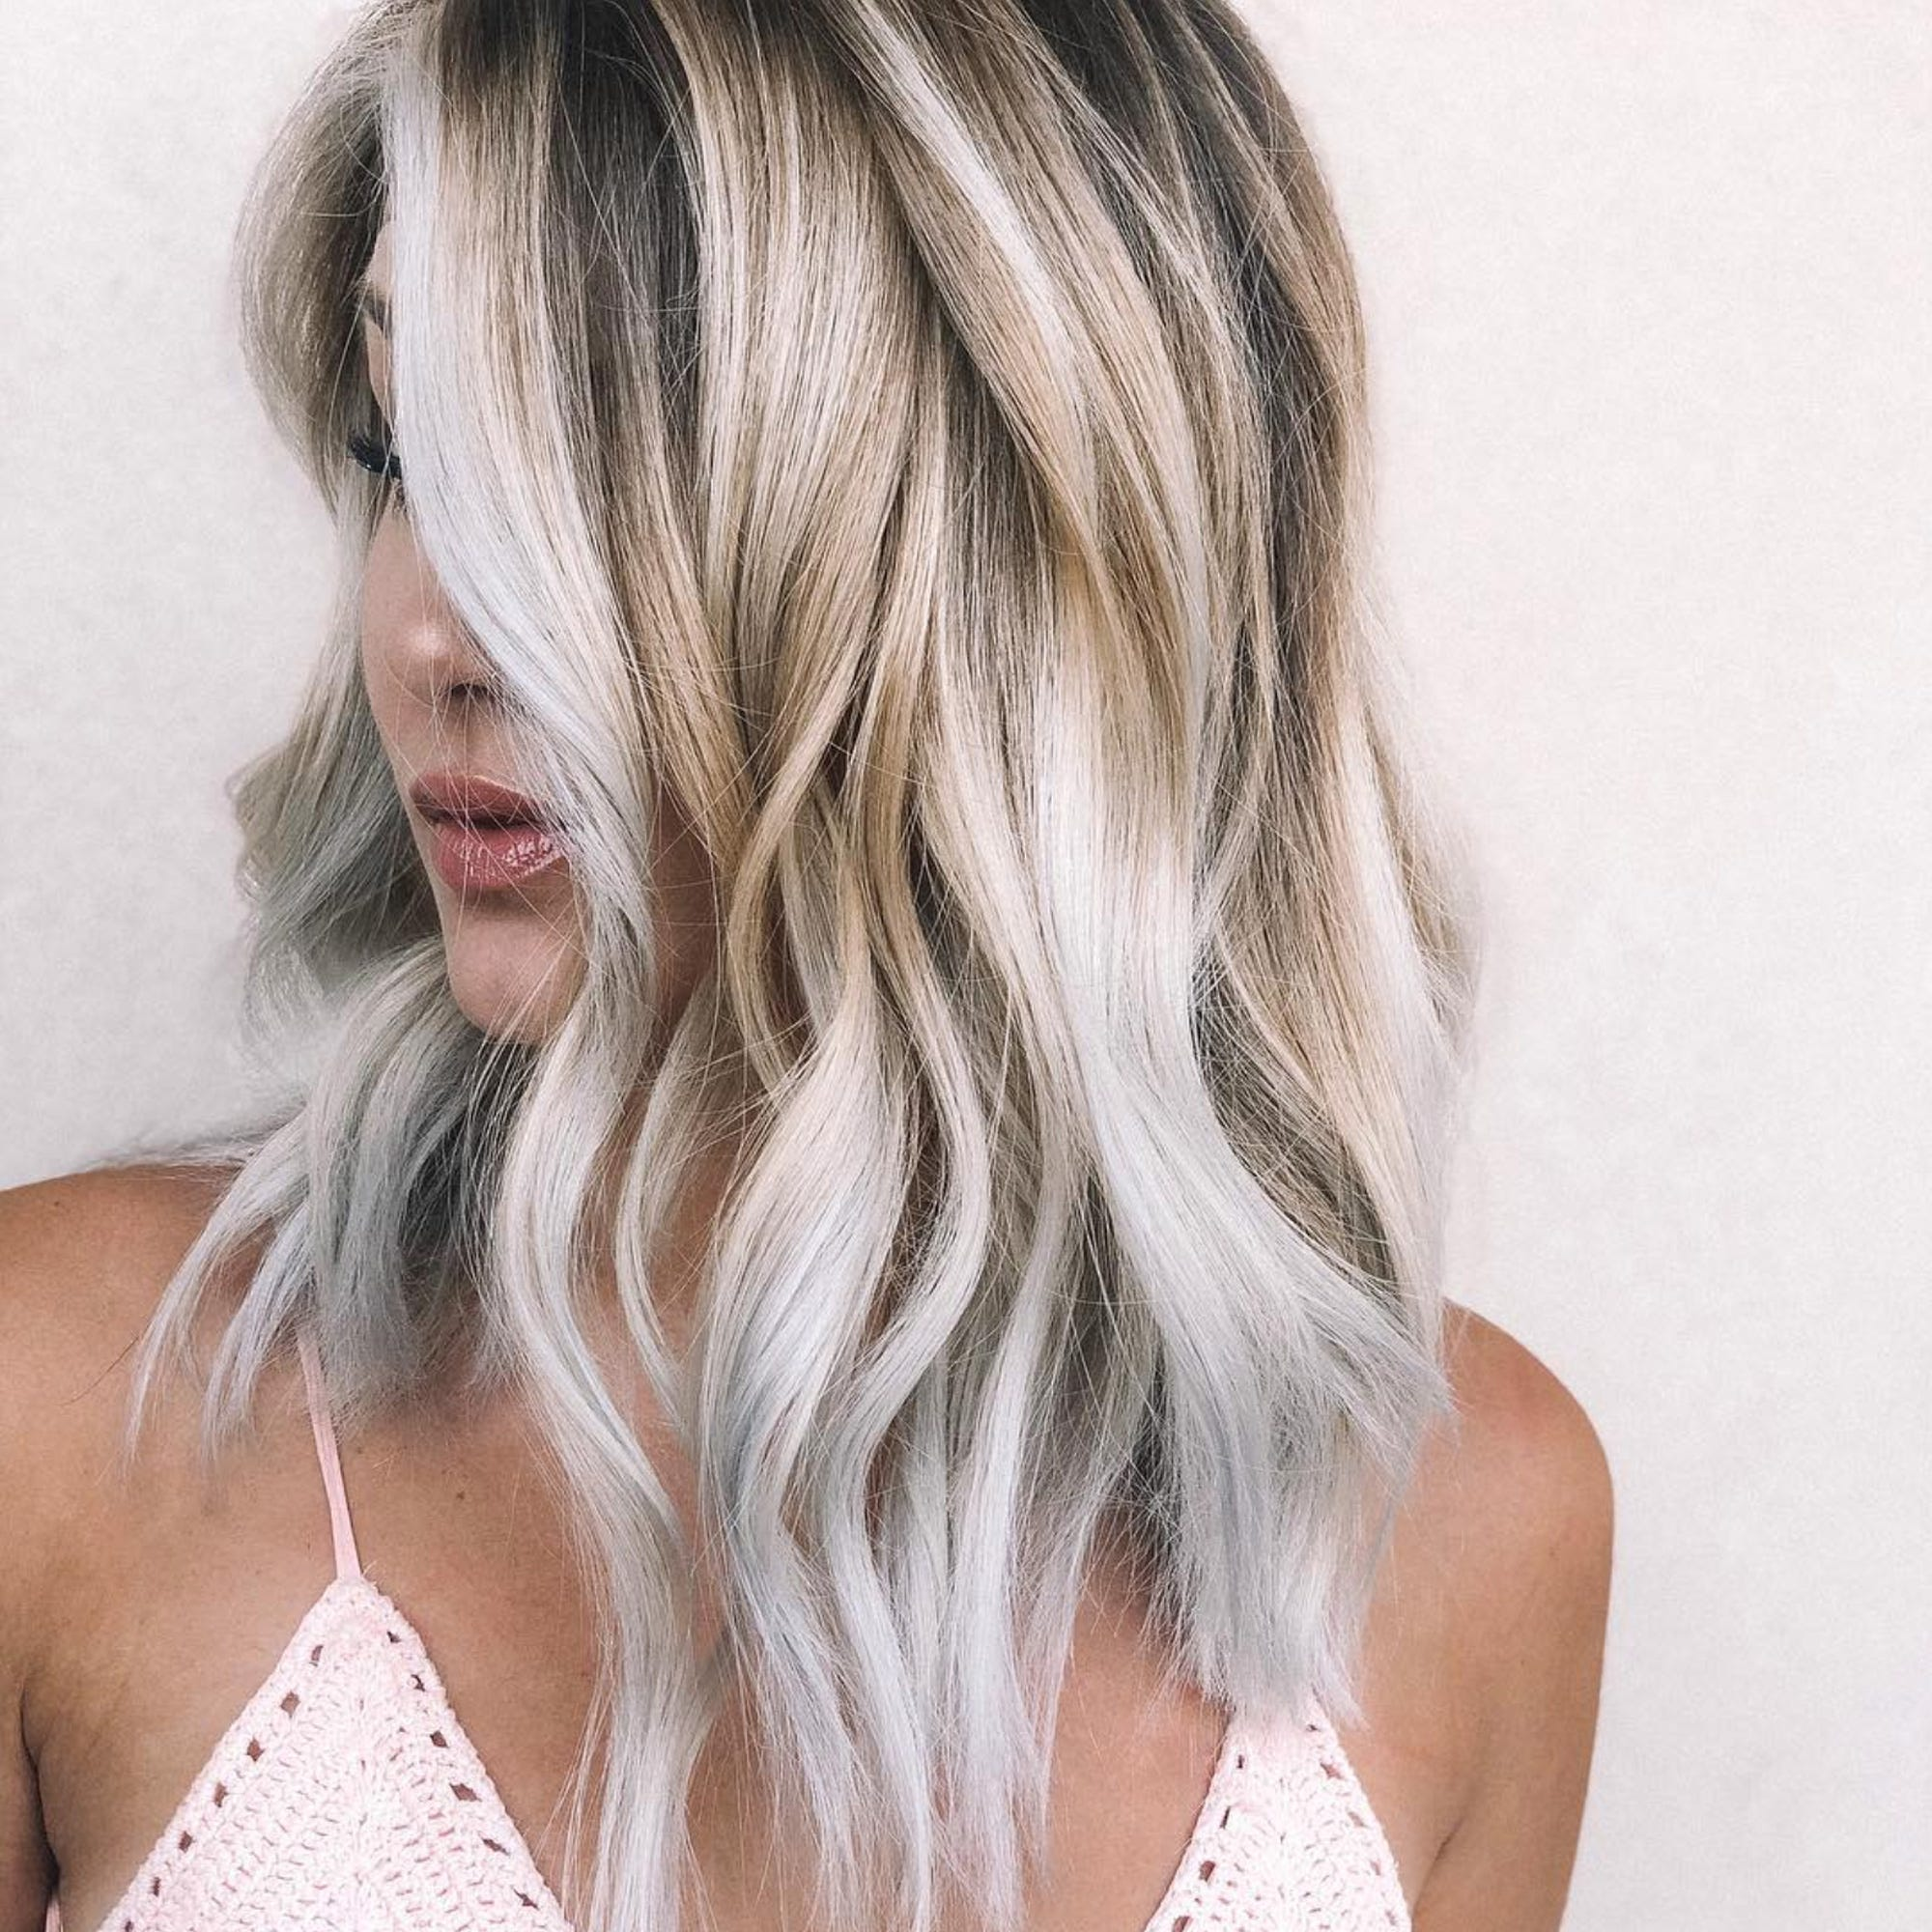 Toasted Coconut The Autumn Hair Trend Taking Over